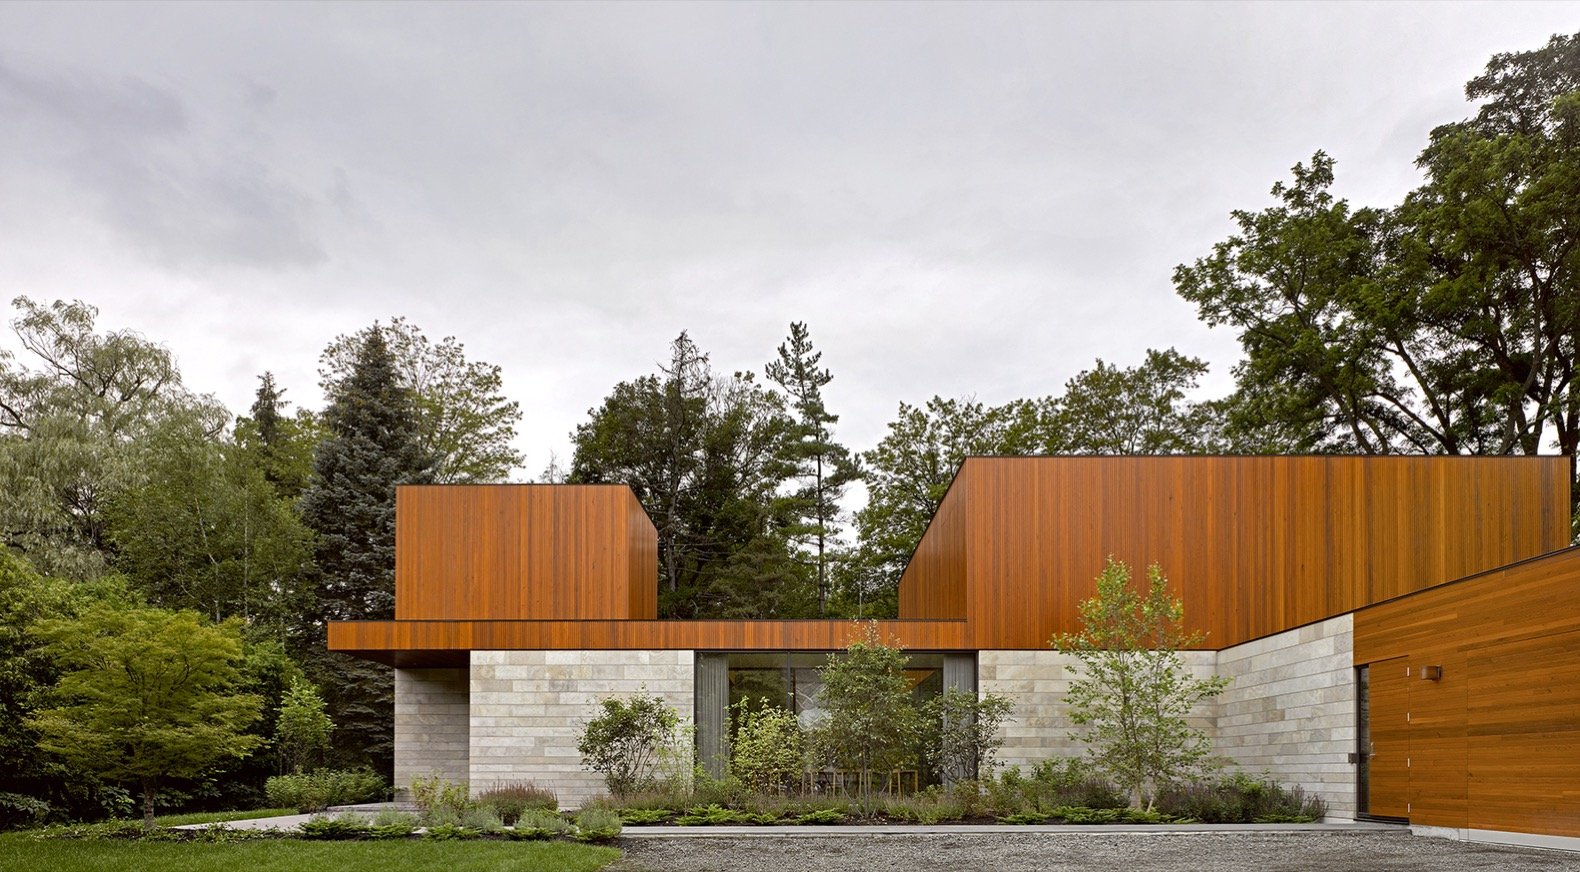 Solar-powered multi-generational home offsets its energy consumption